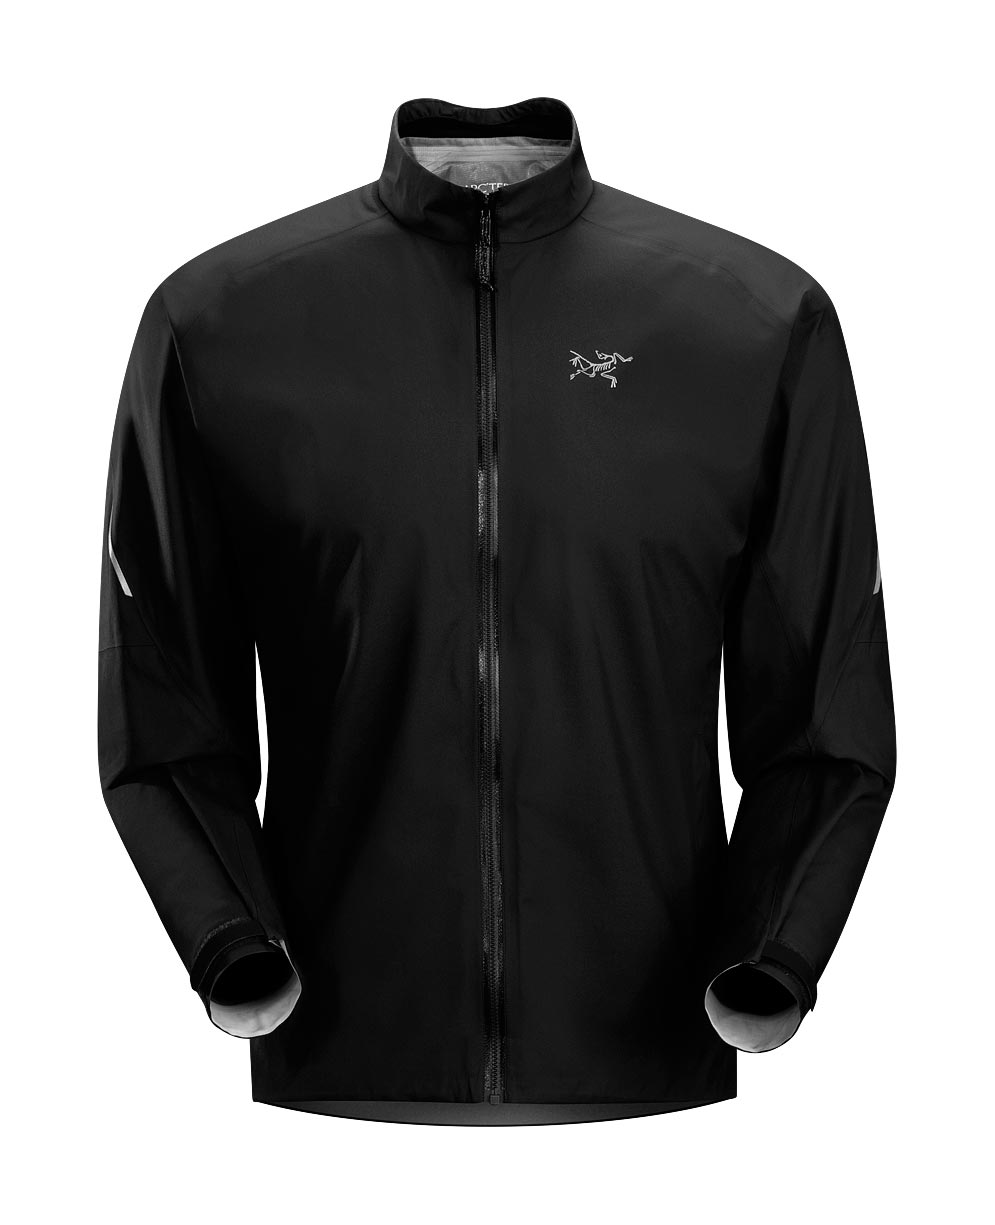 Arcteryx Jackets Men Black Visio FL Jacket - New